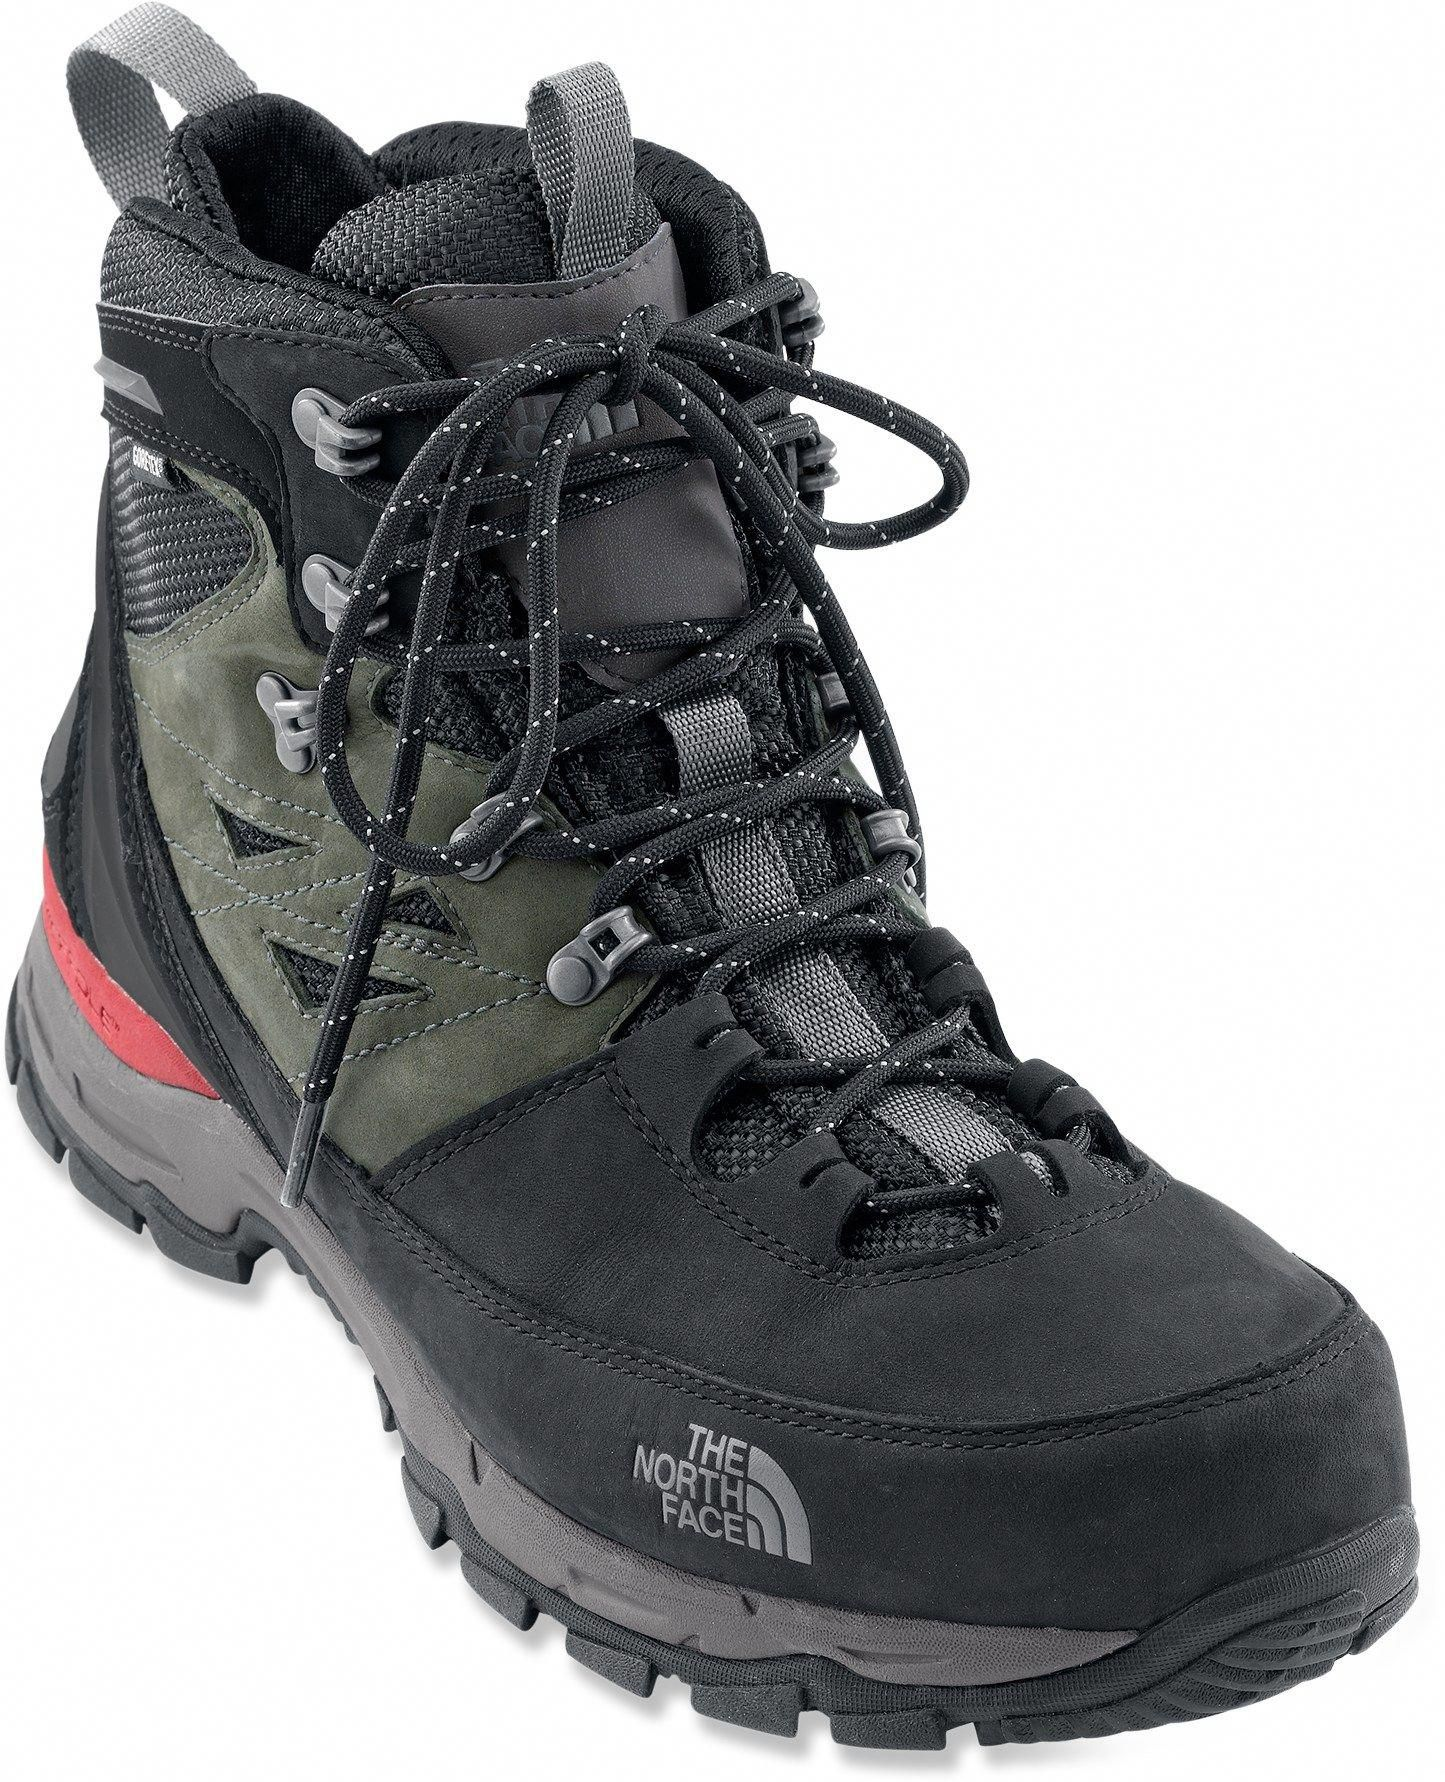 78950c8136f The North Face Verbera Hiker GTX Hiking Boots - Men s - Free Shipping at  REI.com